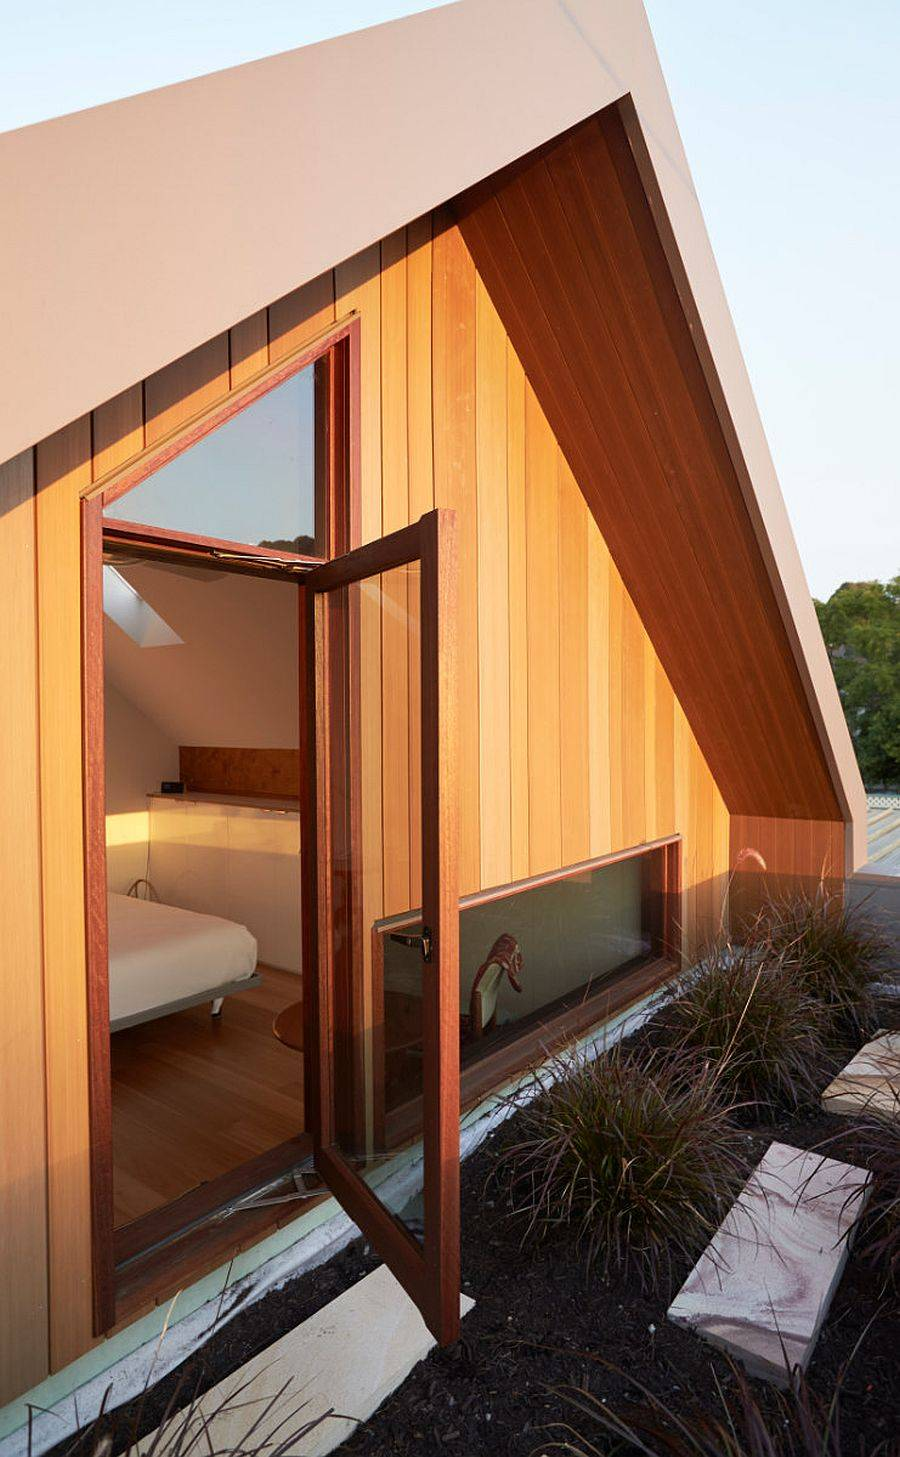 Wodsy-exterior-of-the-second-home-adds-another-layer-of-insulation-to-the-interior-21763